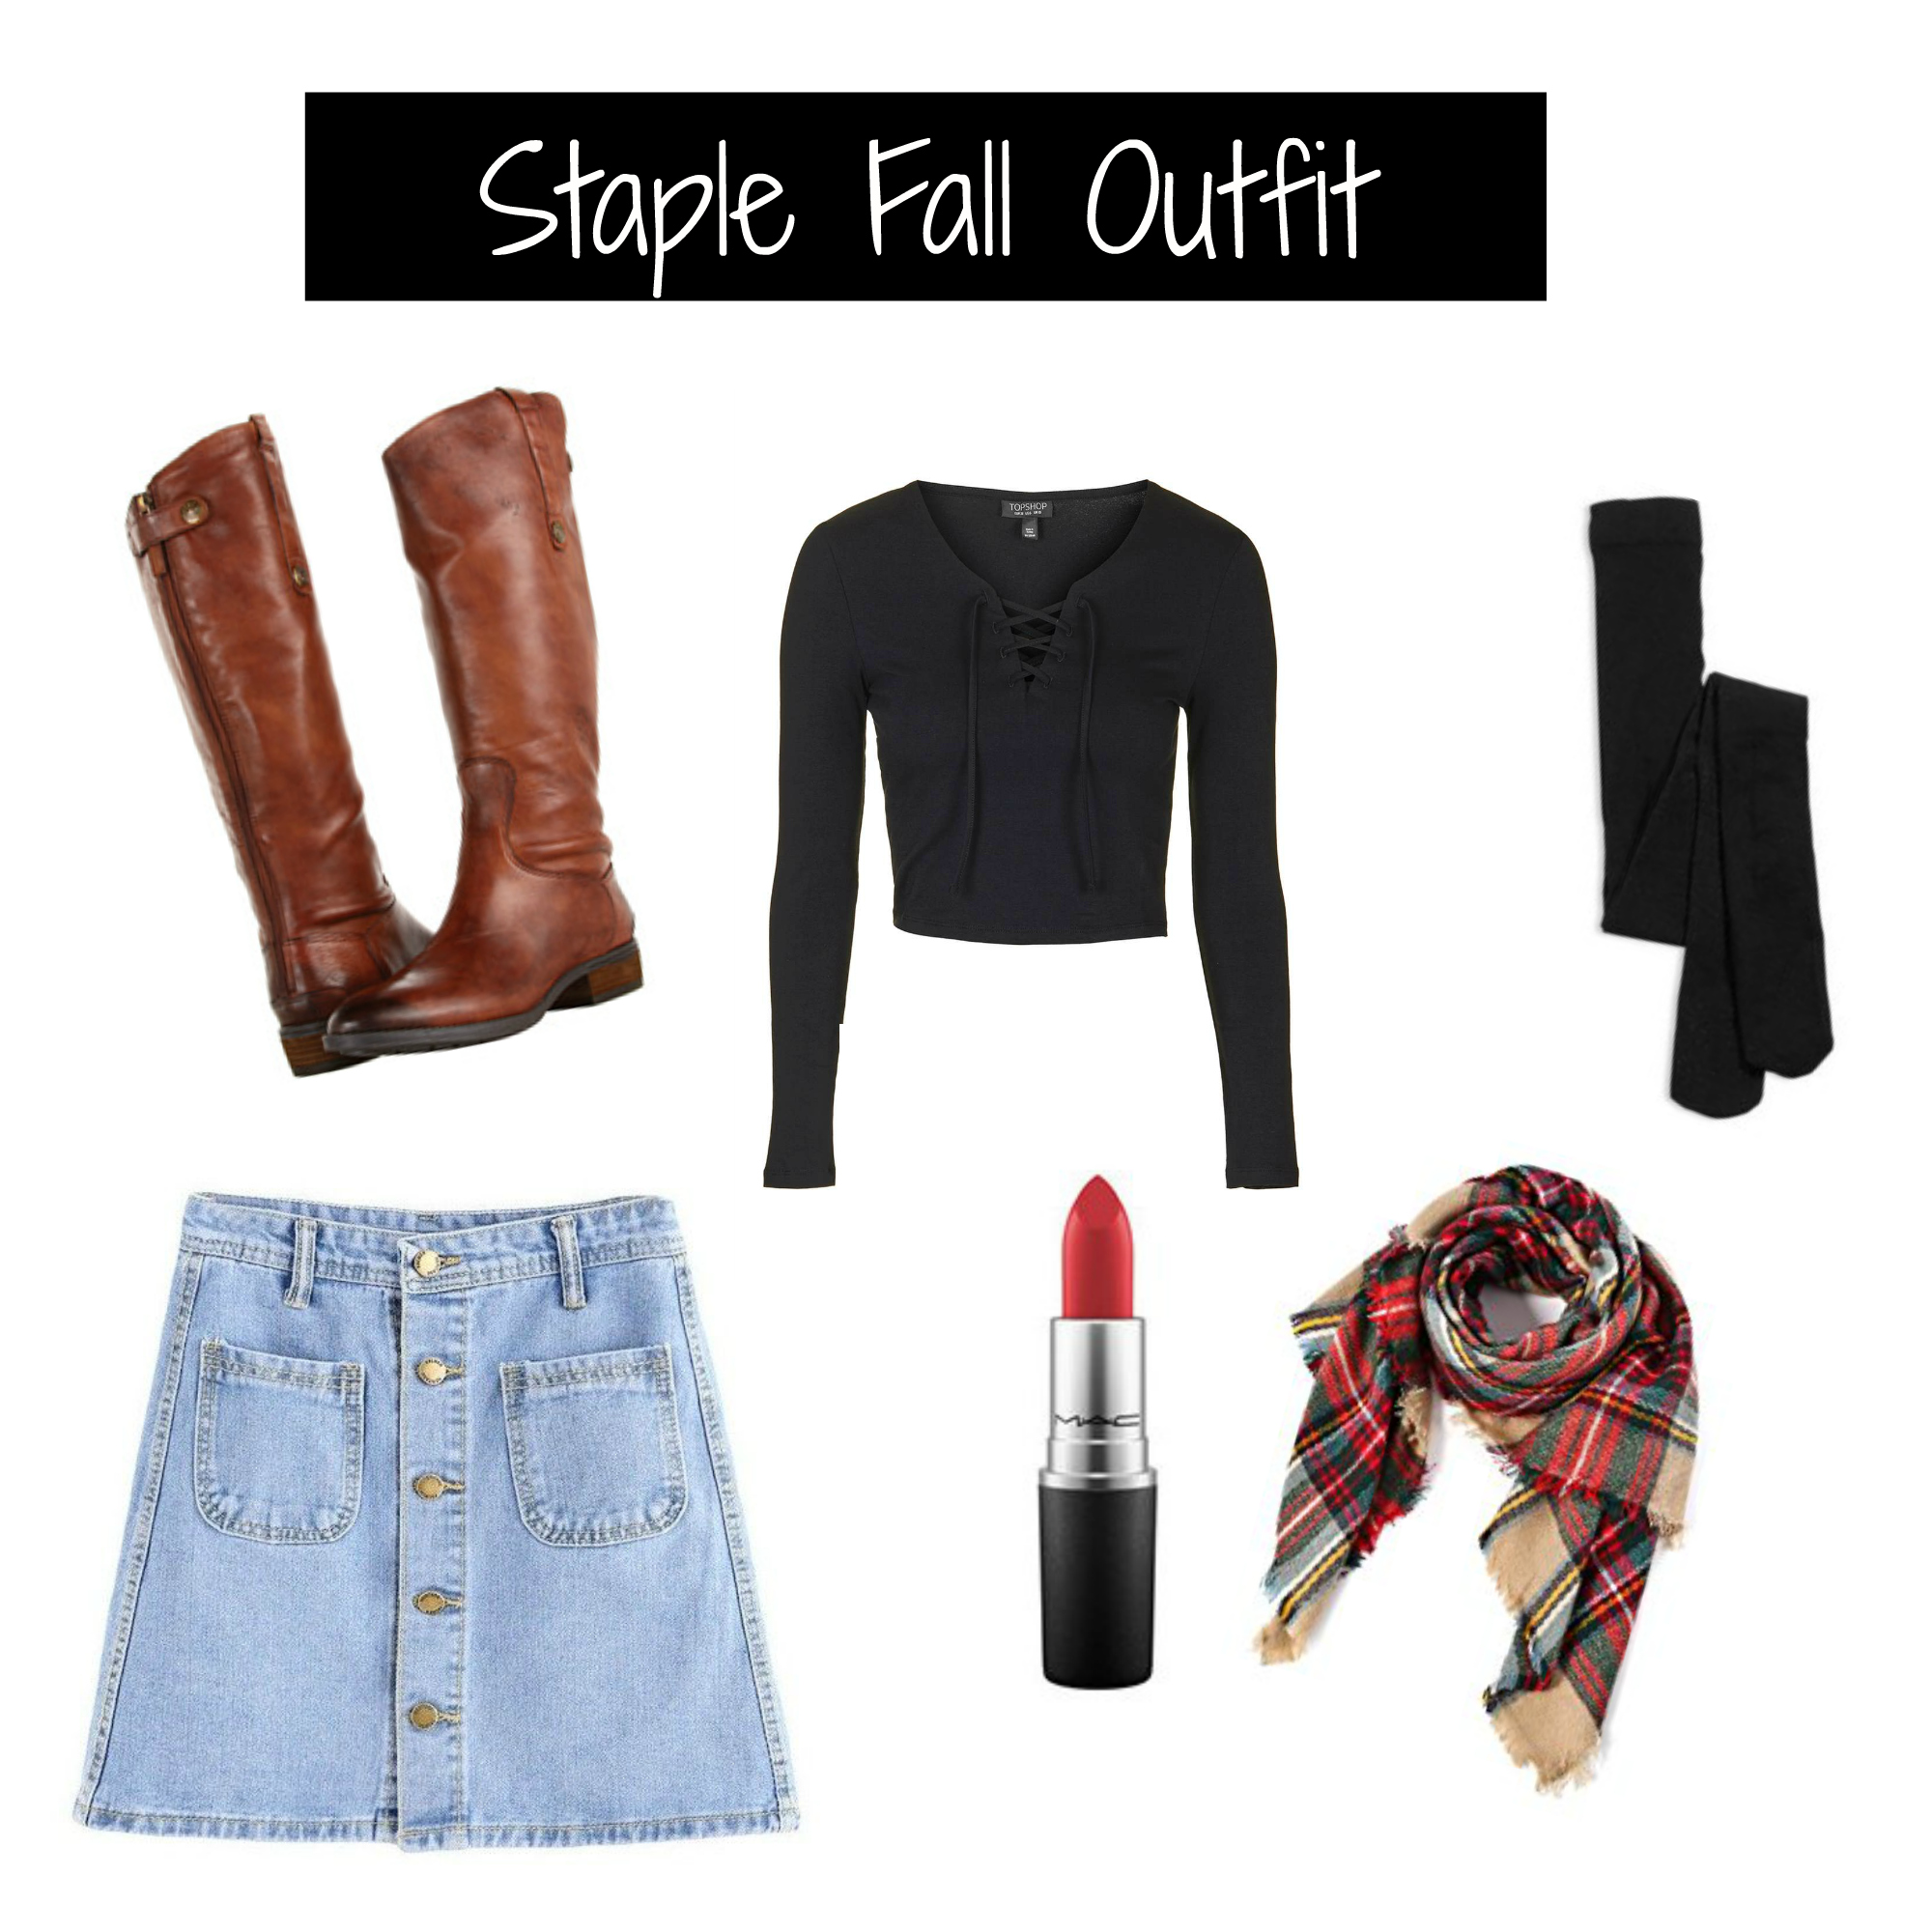 staple fall outfit